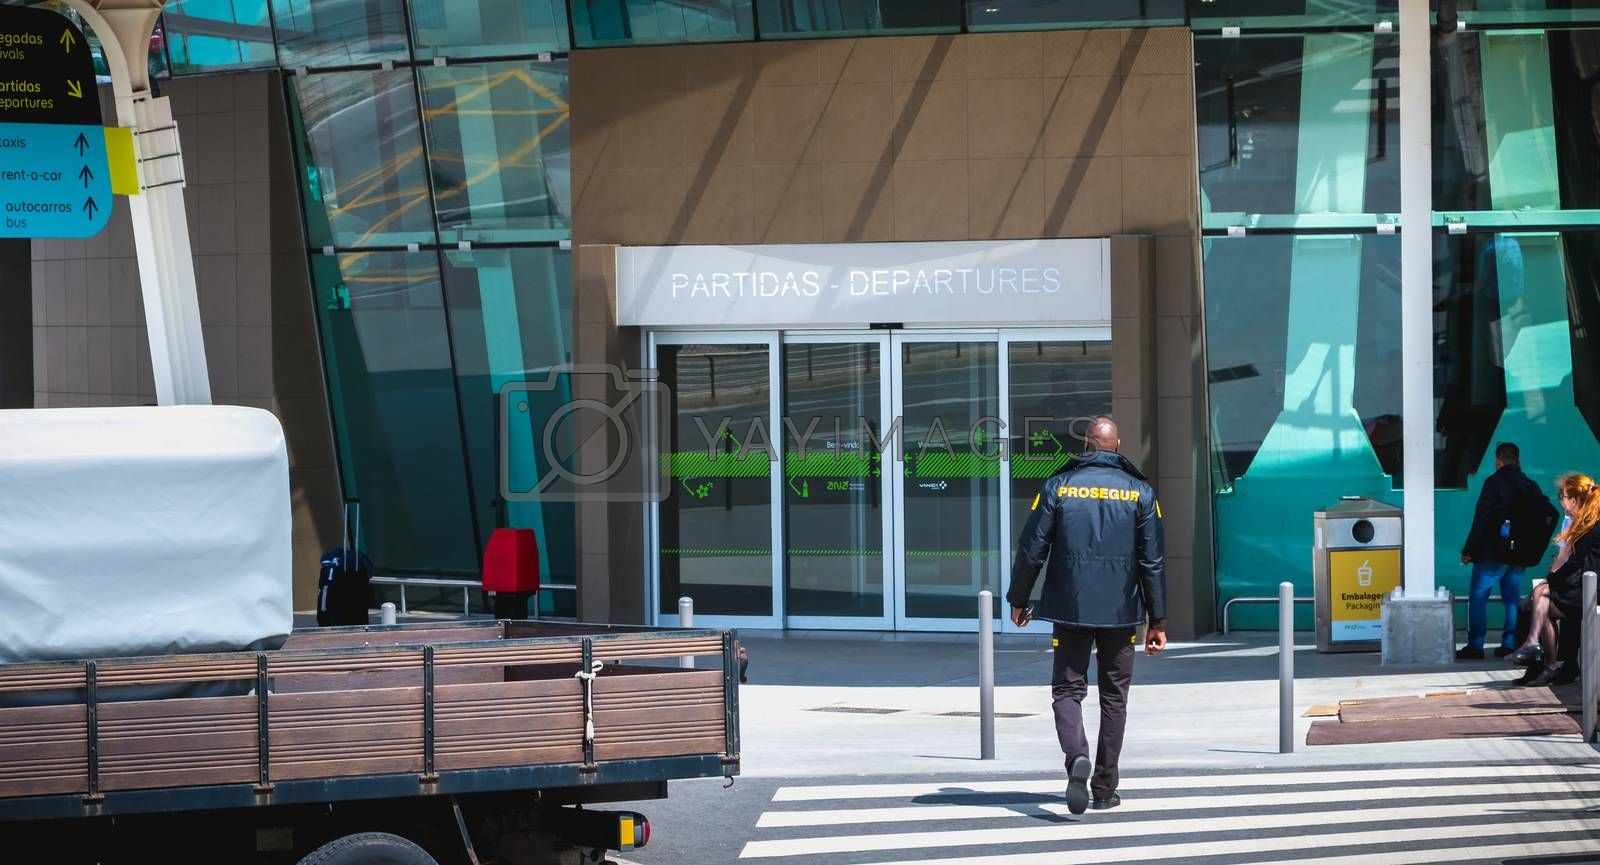 Faro, Portugal - May 3, 2018: Security guard supervising the entrance of Faro International Airport on a spring day